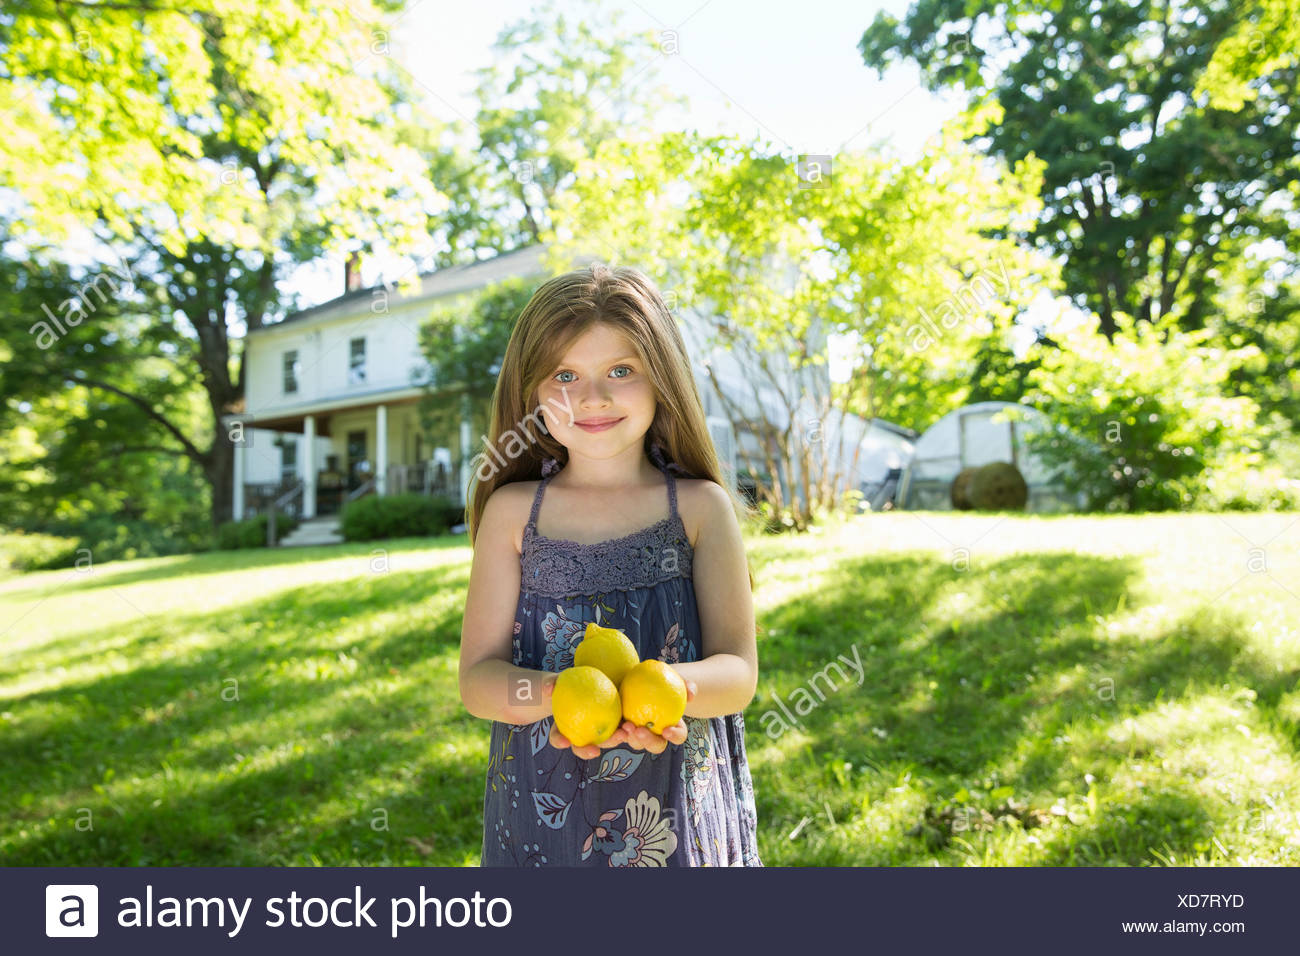 Outdoors in summer. On the farm. A girl in the garden holding three large lemon fruits in her hand. - Stock Image